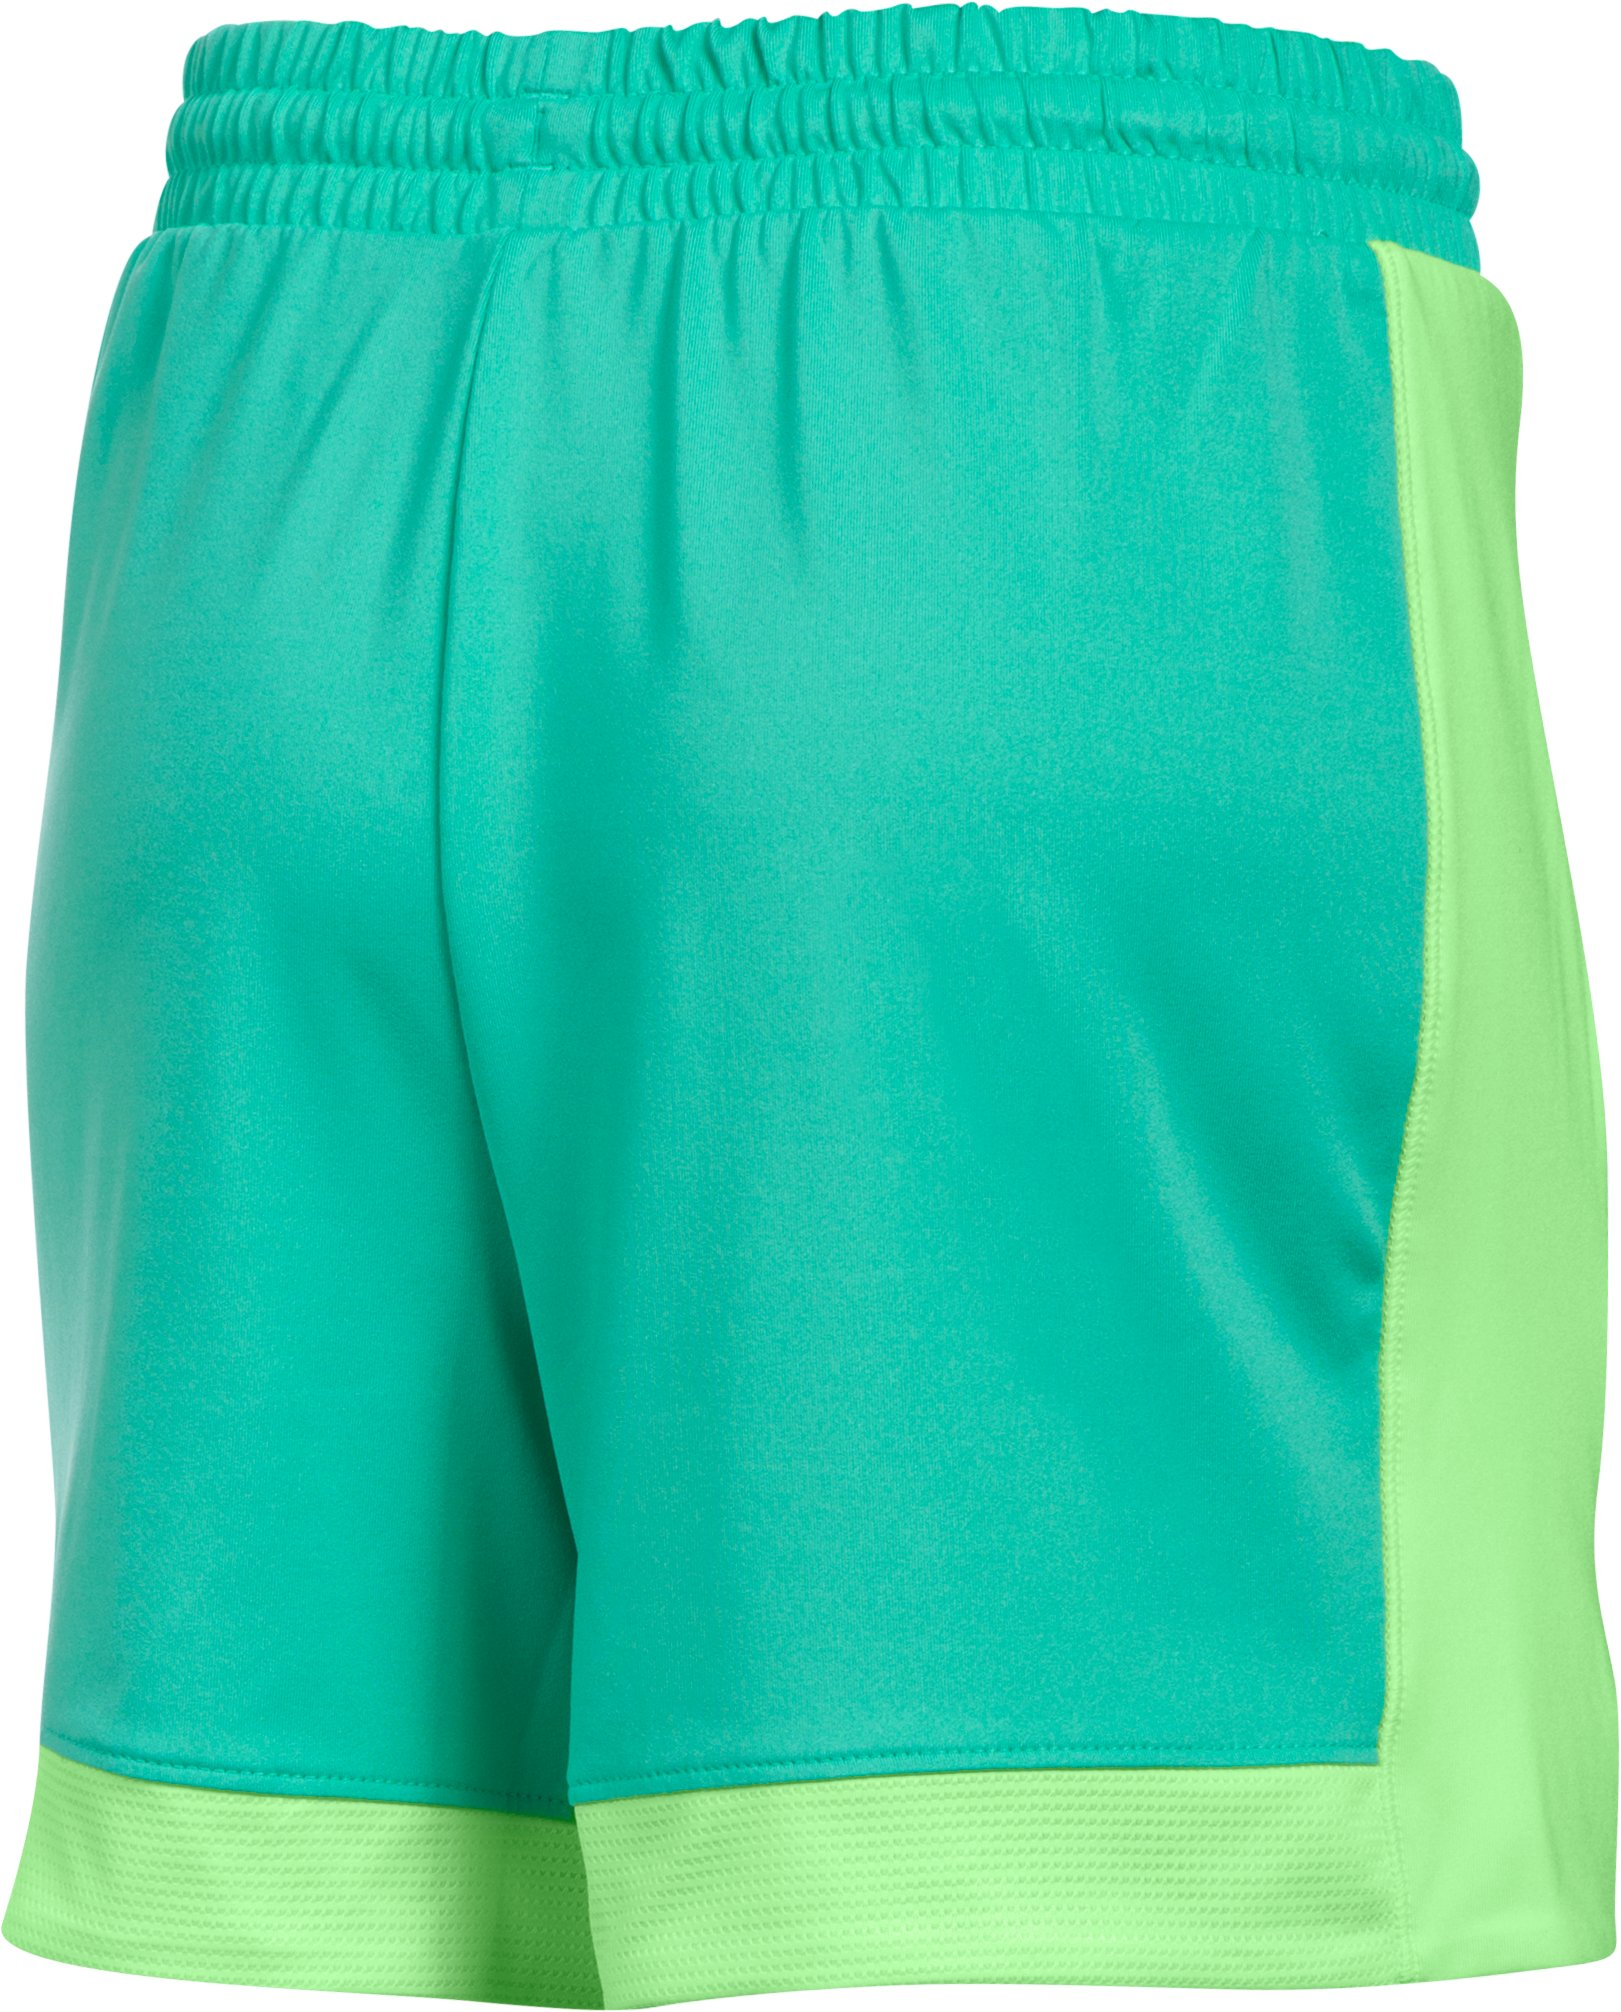 Girls' Armour Sports Shorts, ABSINTHE GREEN, undefined